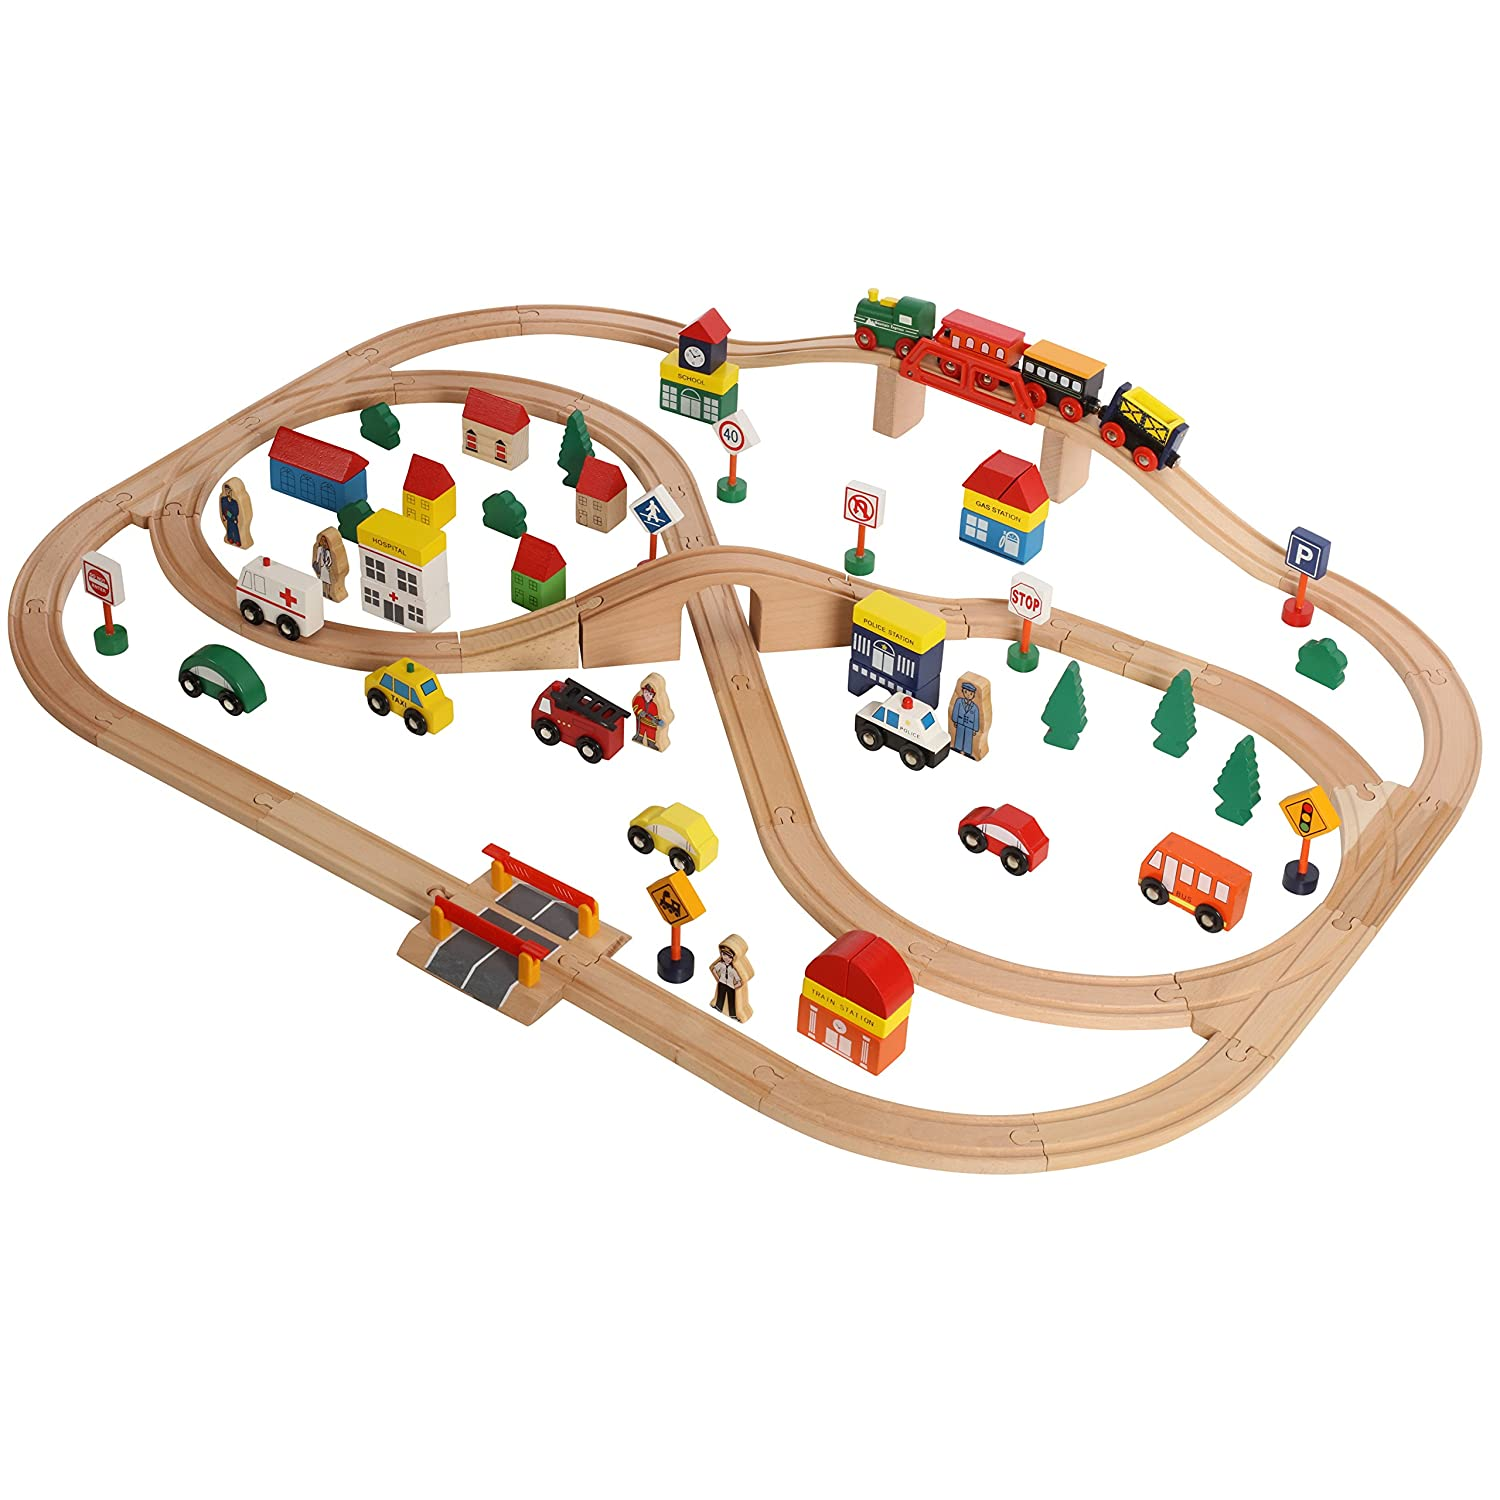 Compatible with All Major Brands On Track USA 100 Piece All in One Wooden Train Set with Accessories Comes in A Clear Container